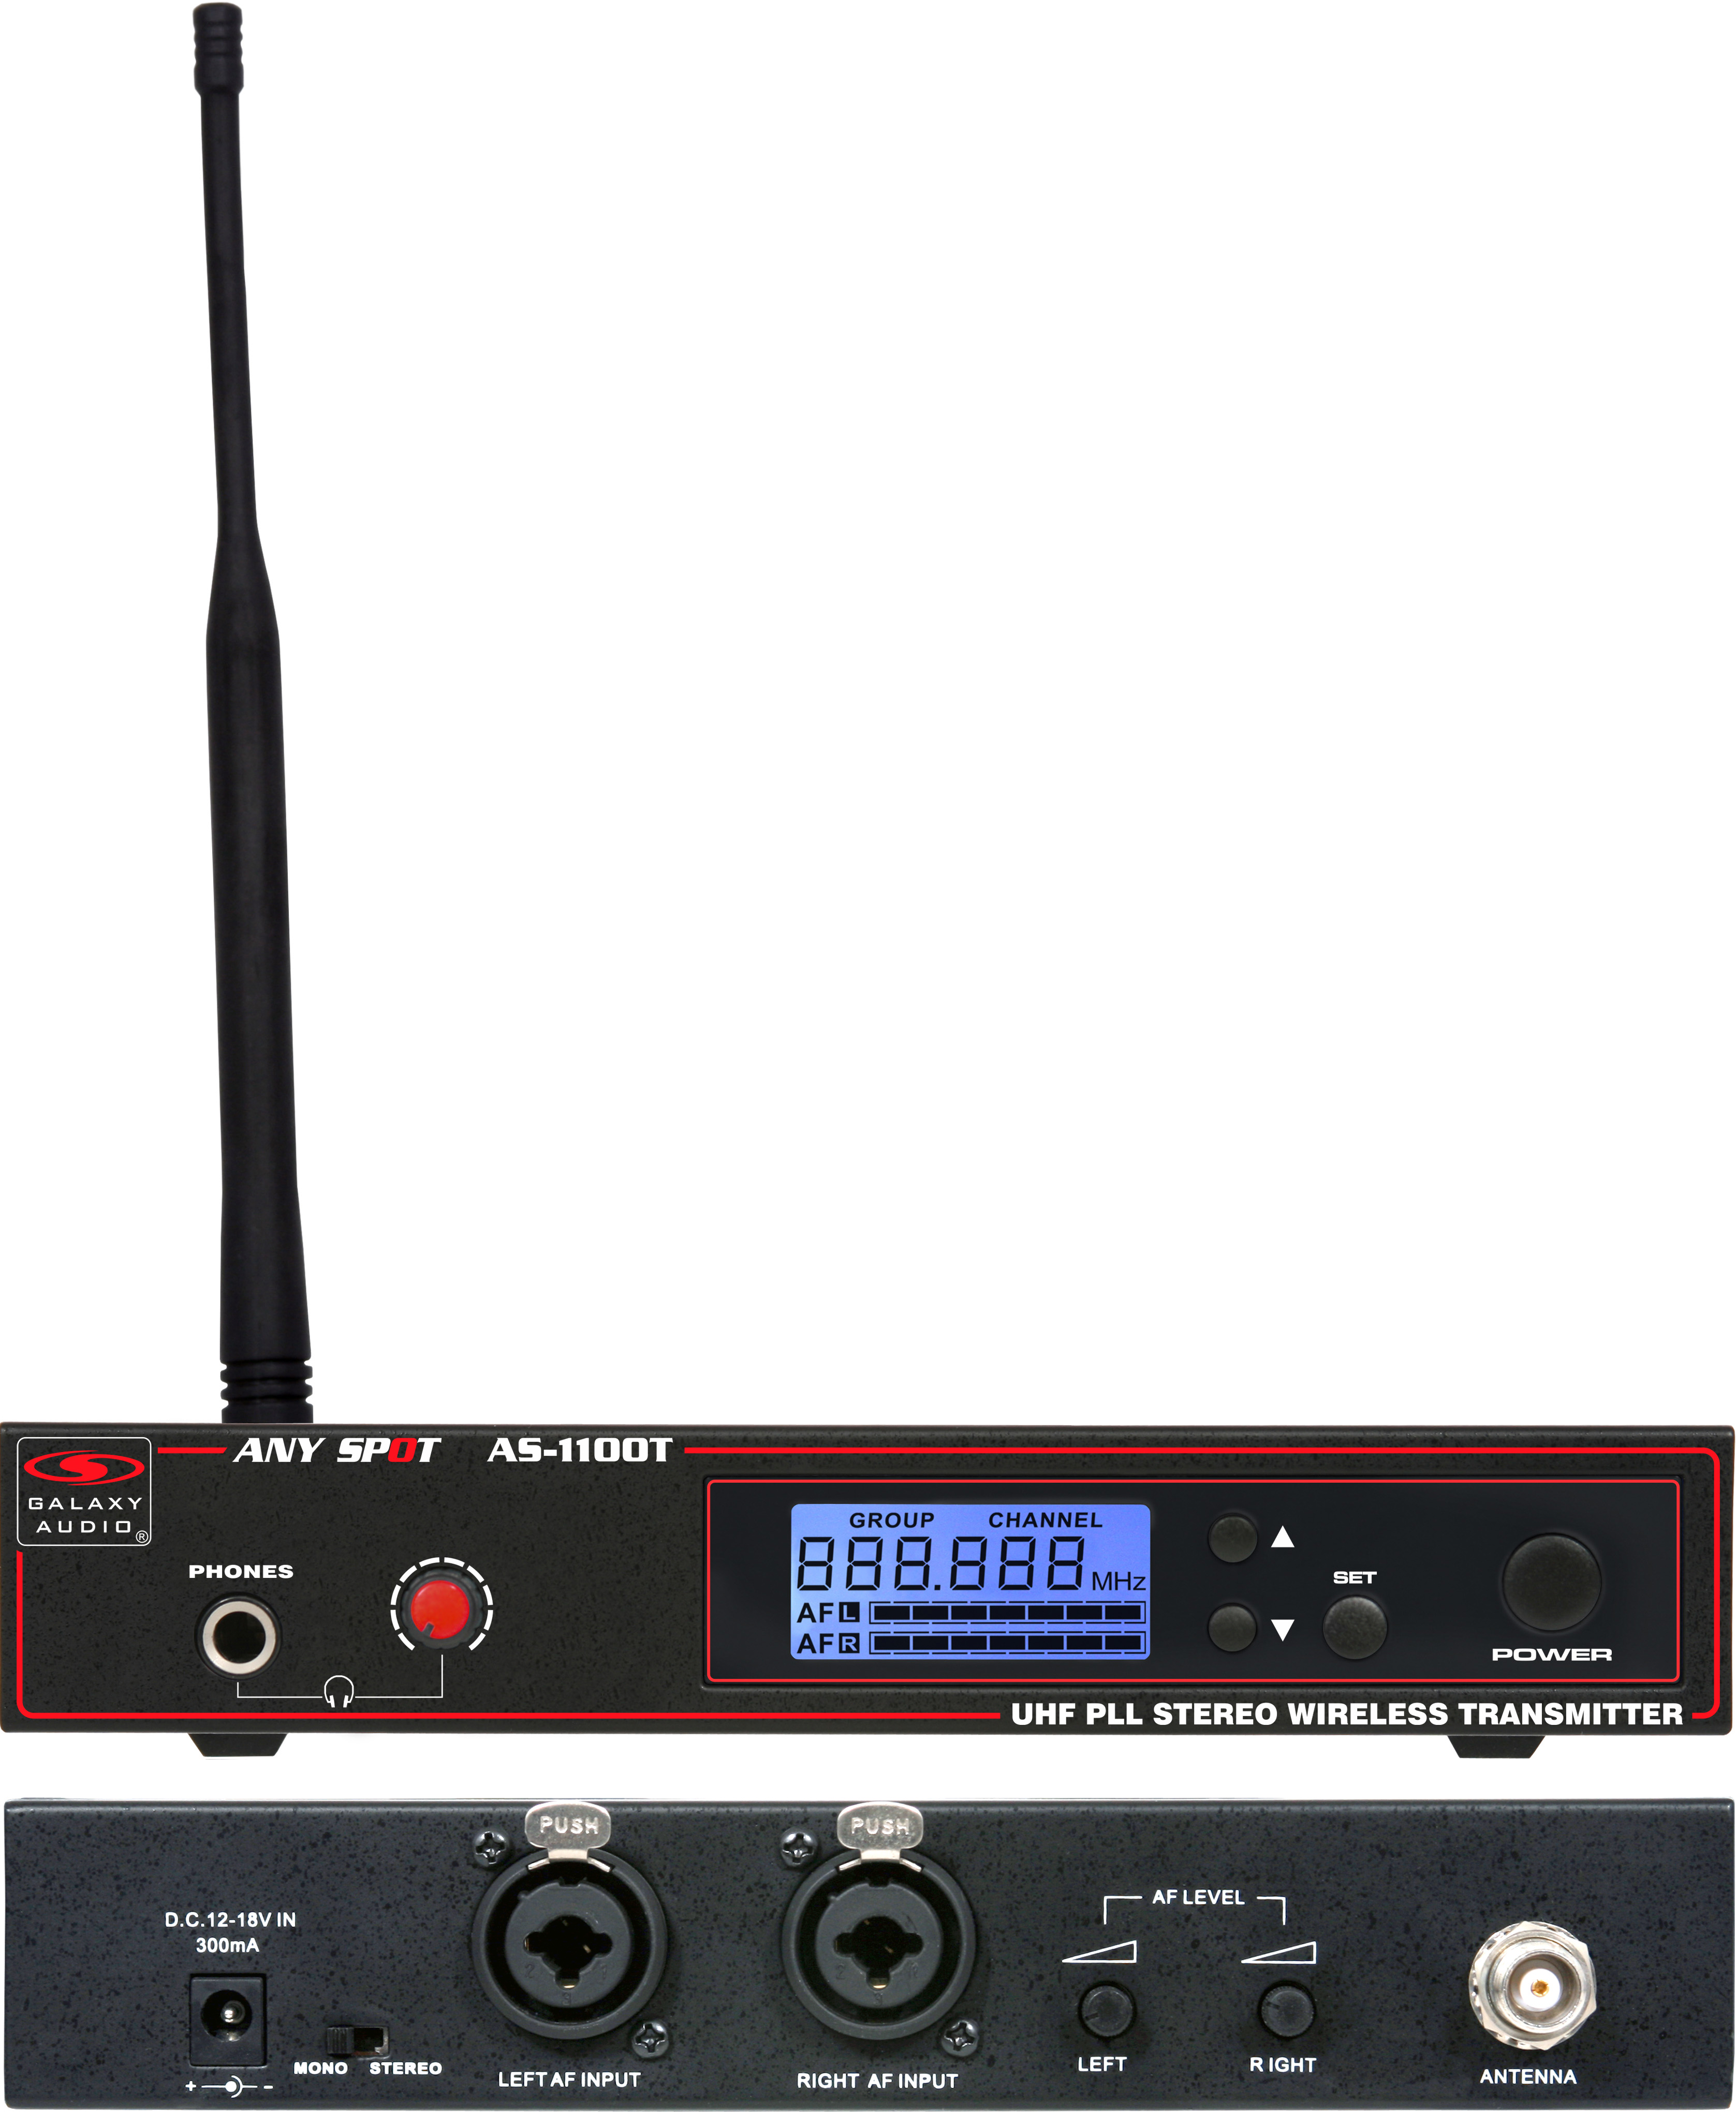 Galaxy Audio 1100 SERIES Wireless In-Ear Monitor Receiver Frequency with EB6 Earbuds Freq N